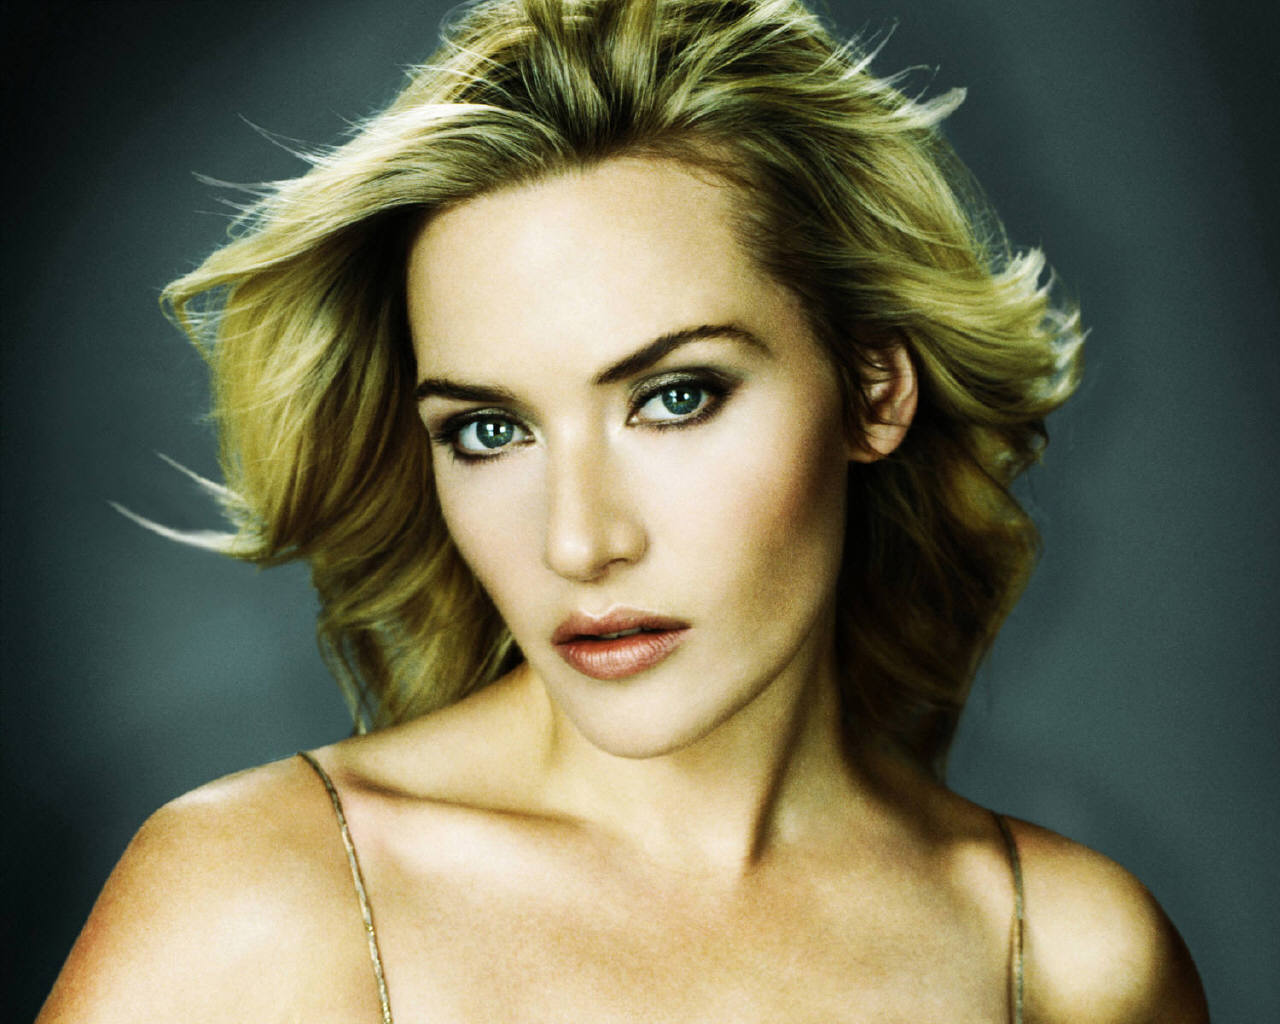 Kate  Kate Winslet Wallpaper 482175  Fanpop